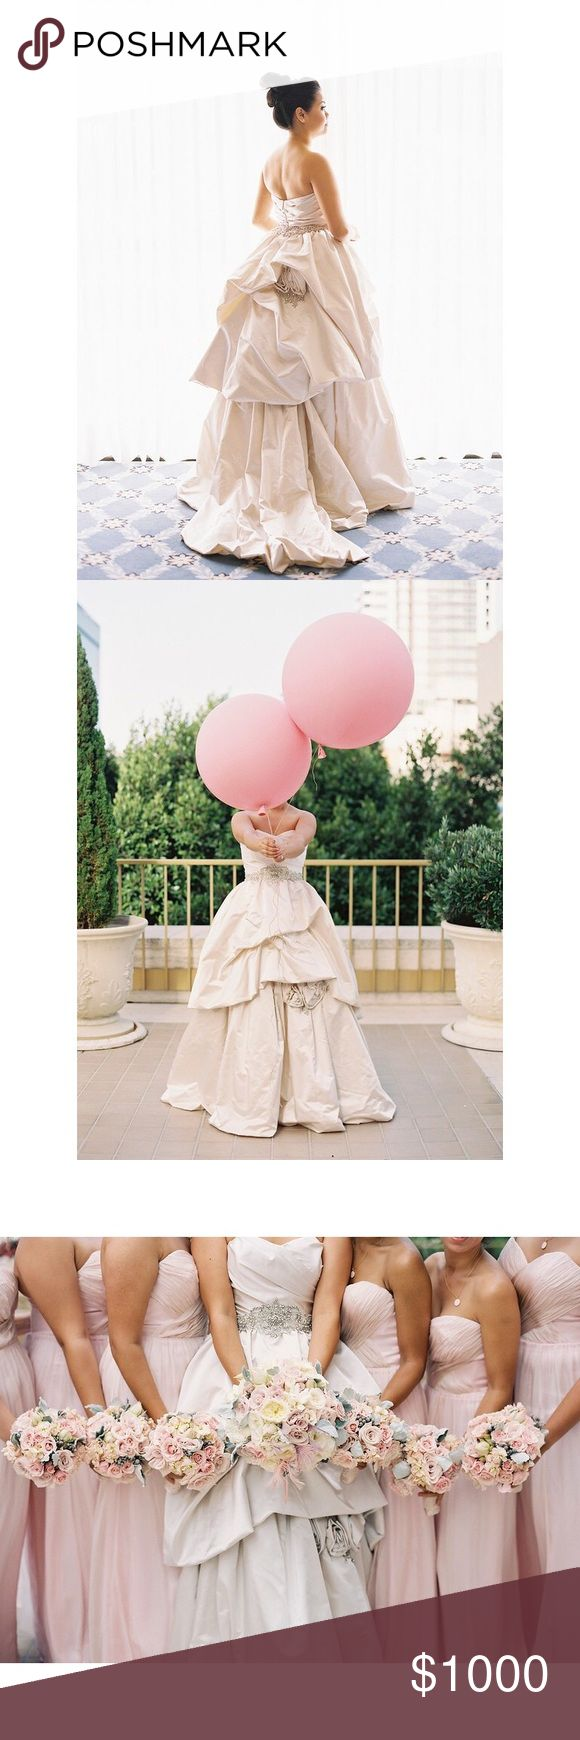 🆕👰🏻 Kenneth Pool Wedding Gown 📸 Photo credit: https://lovellabridal.com/susan-in-absolutely-perfect-kenneth-pool-ball-gown-marries-jade/ Kenneth Pool Dresses Wedding